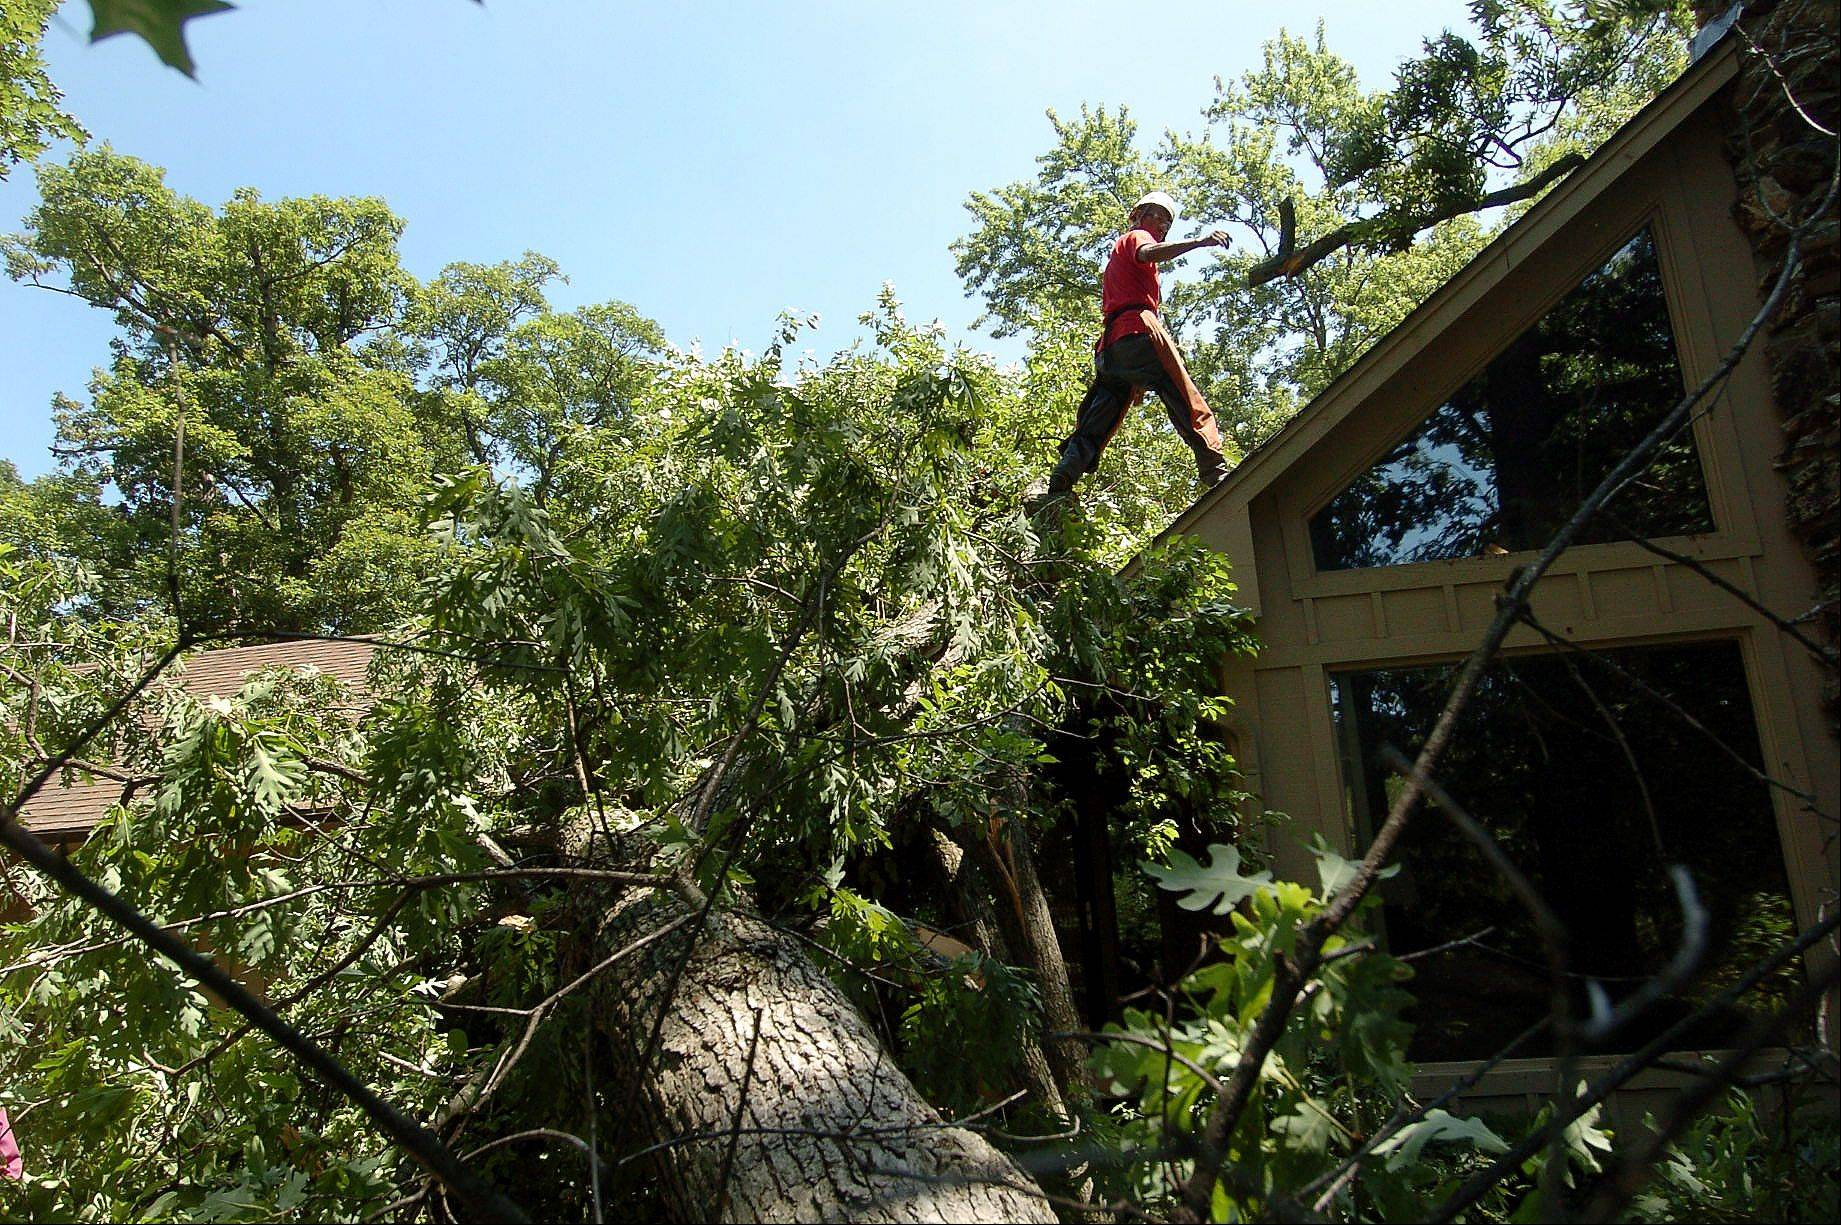 Luis Garcia and his crew from McGinty Bros., Inc. remove a fallen tree from the roof of a residence on Brierwoods Lane in Hawthorn Woods.